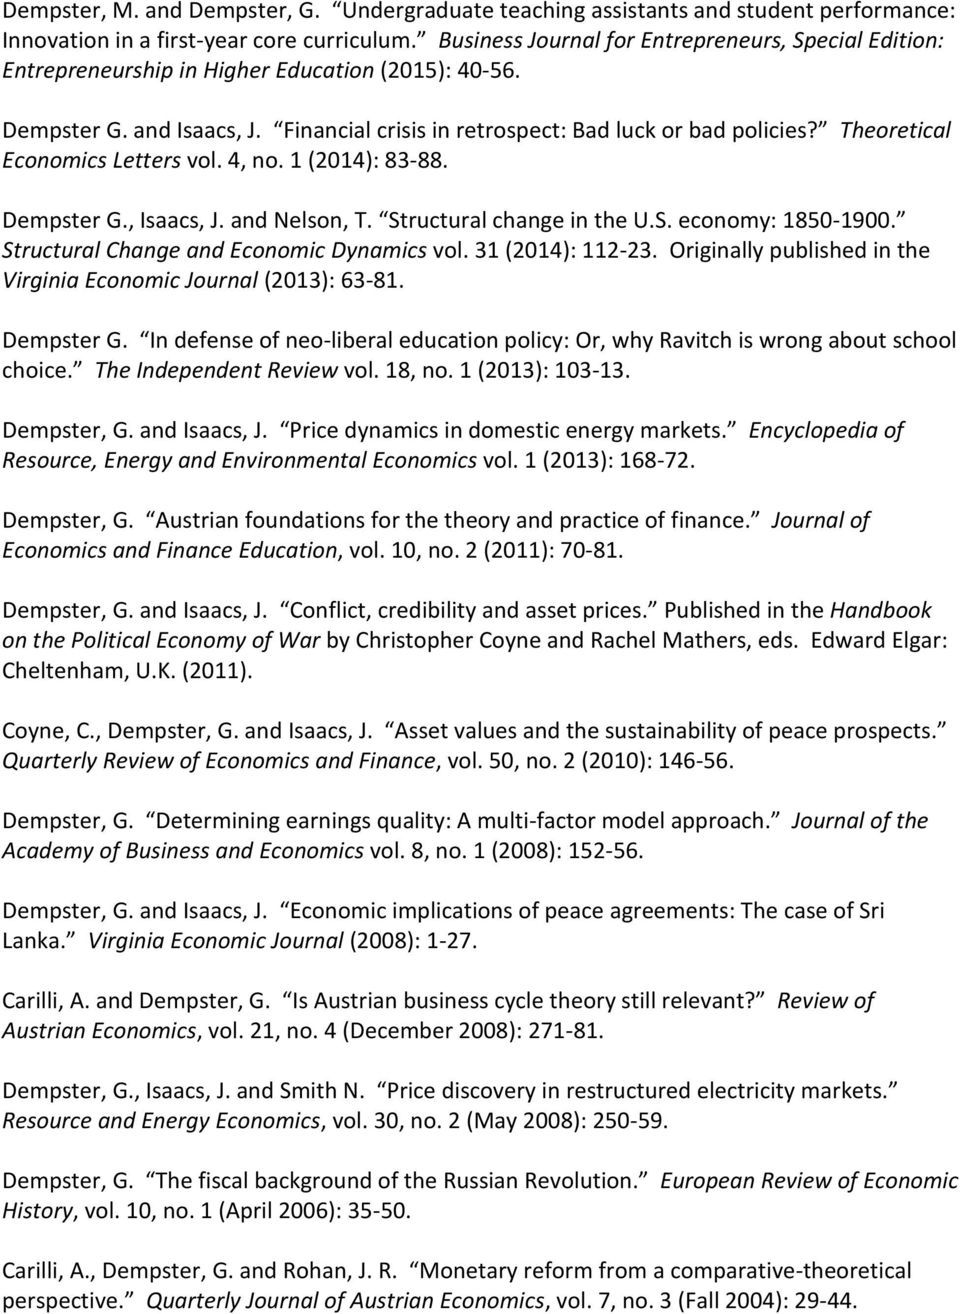 Theoretical Economics Letters vol. 4, no. 1 (2014): 83-88. Dempster G., Isaacs, J. and Nelson, T. Structural change in the U.S. economy: 1850-1900. Structural Change and Economic Dynamics vol.